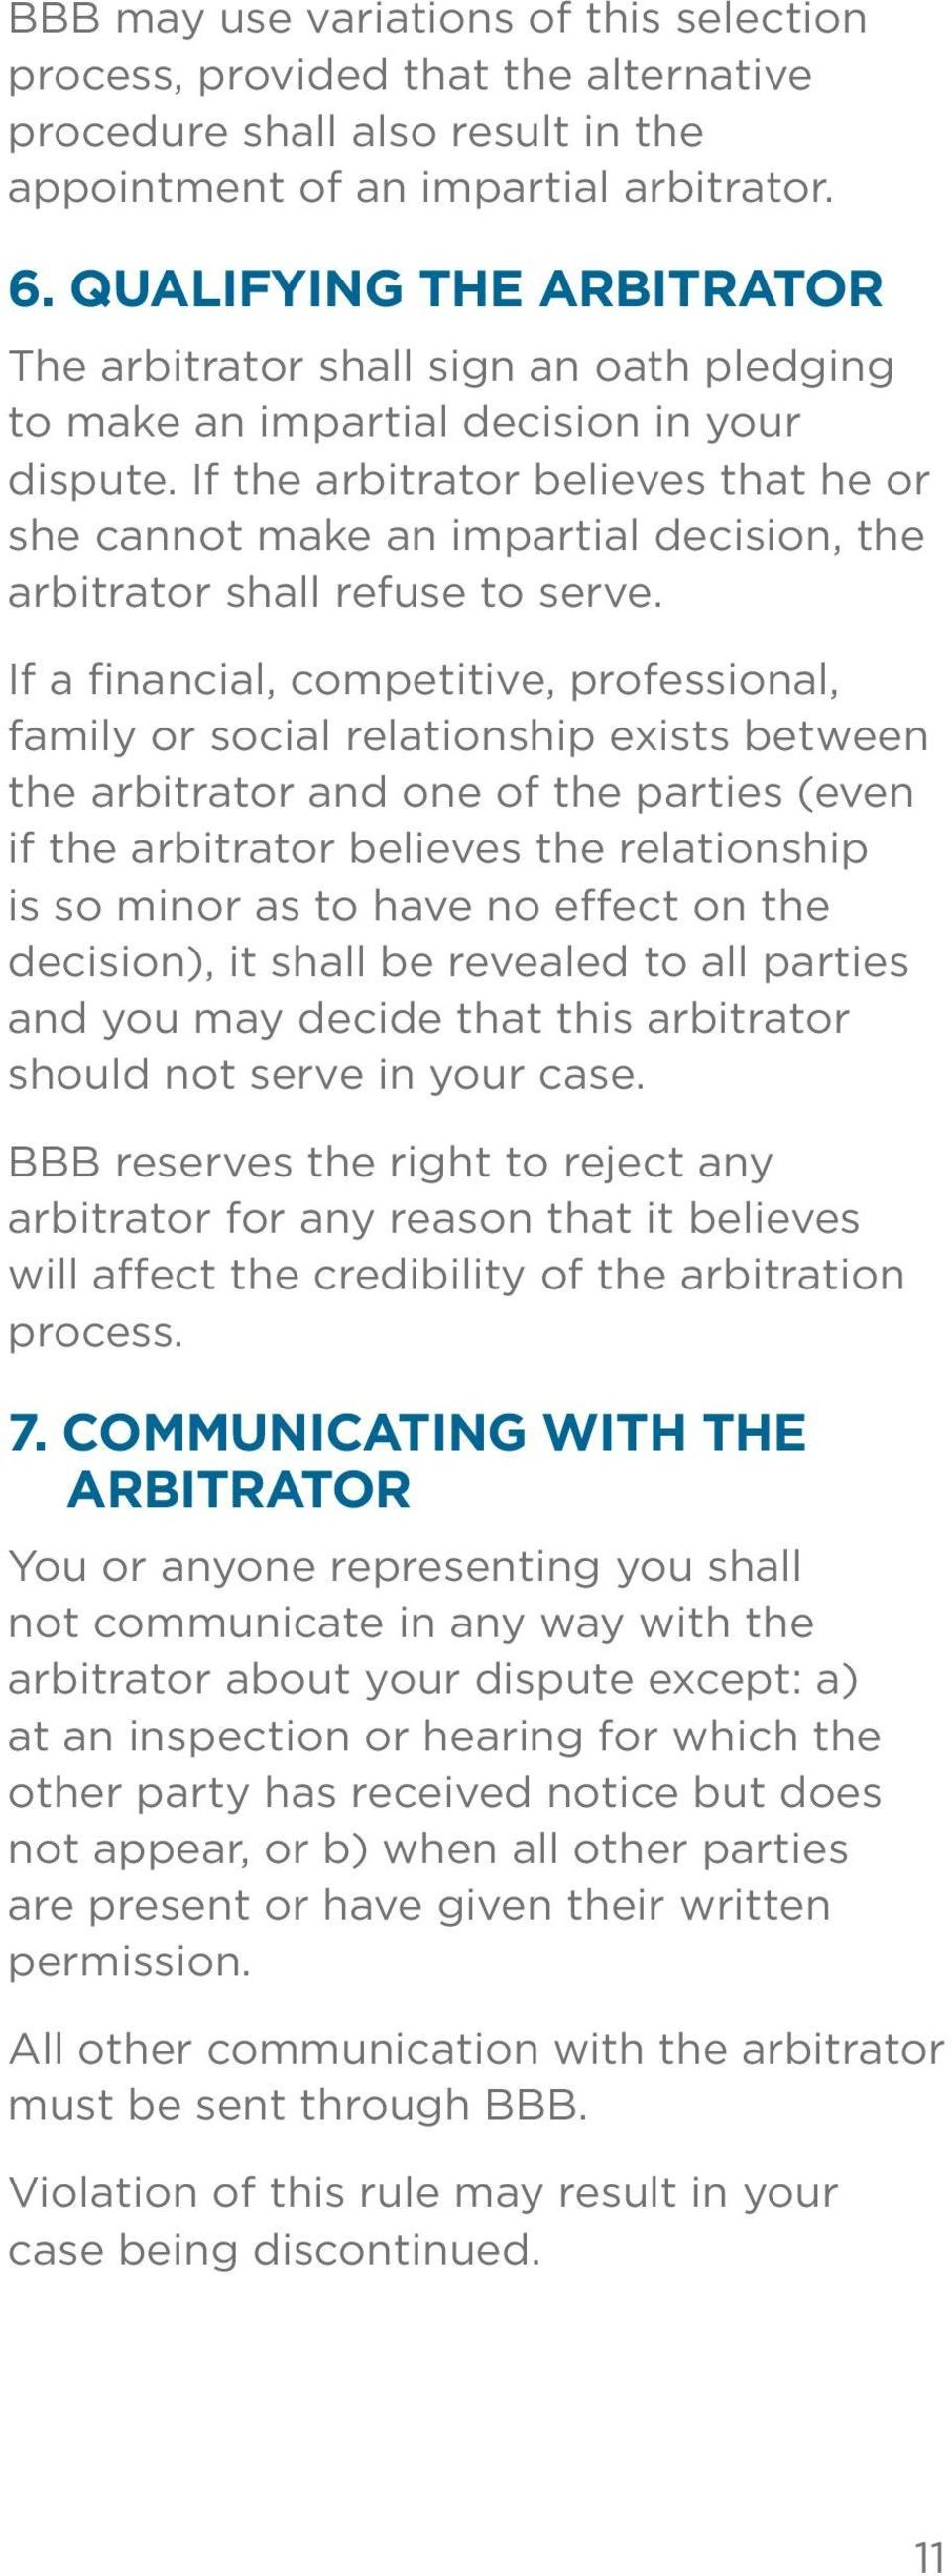 If the arbitrator believes that he or she cannot make an impartial decision, the arbitrator shall refuse to serve.